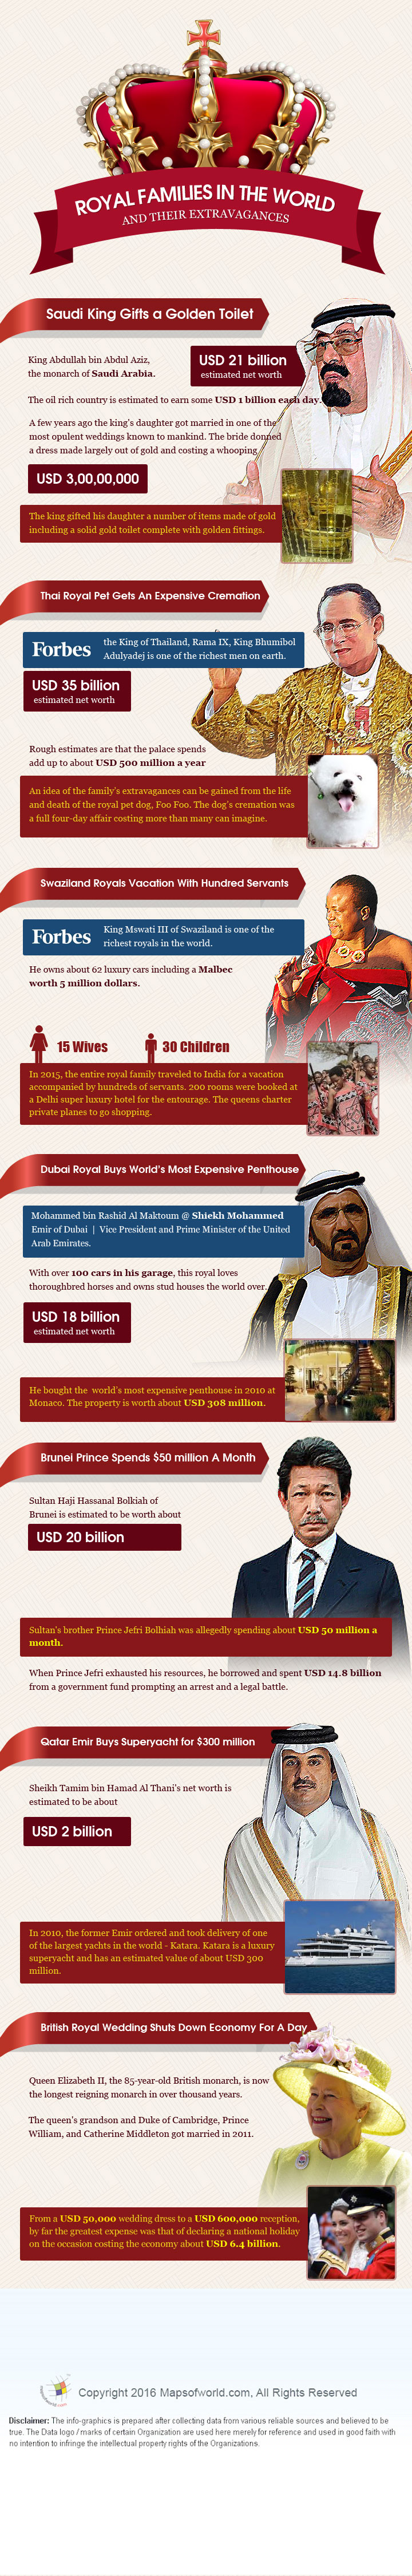 Royal Families in the World and Their Extravagance infographic